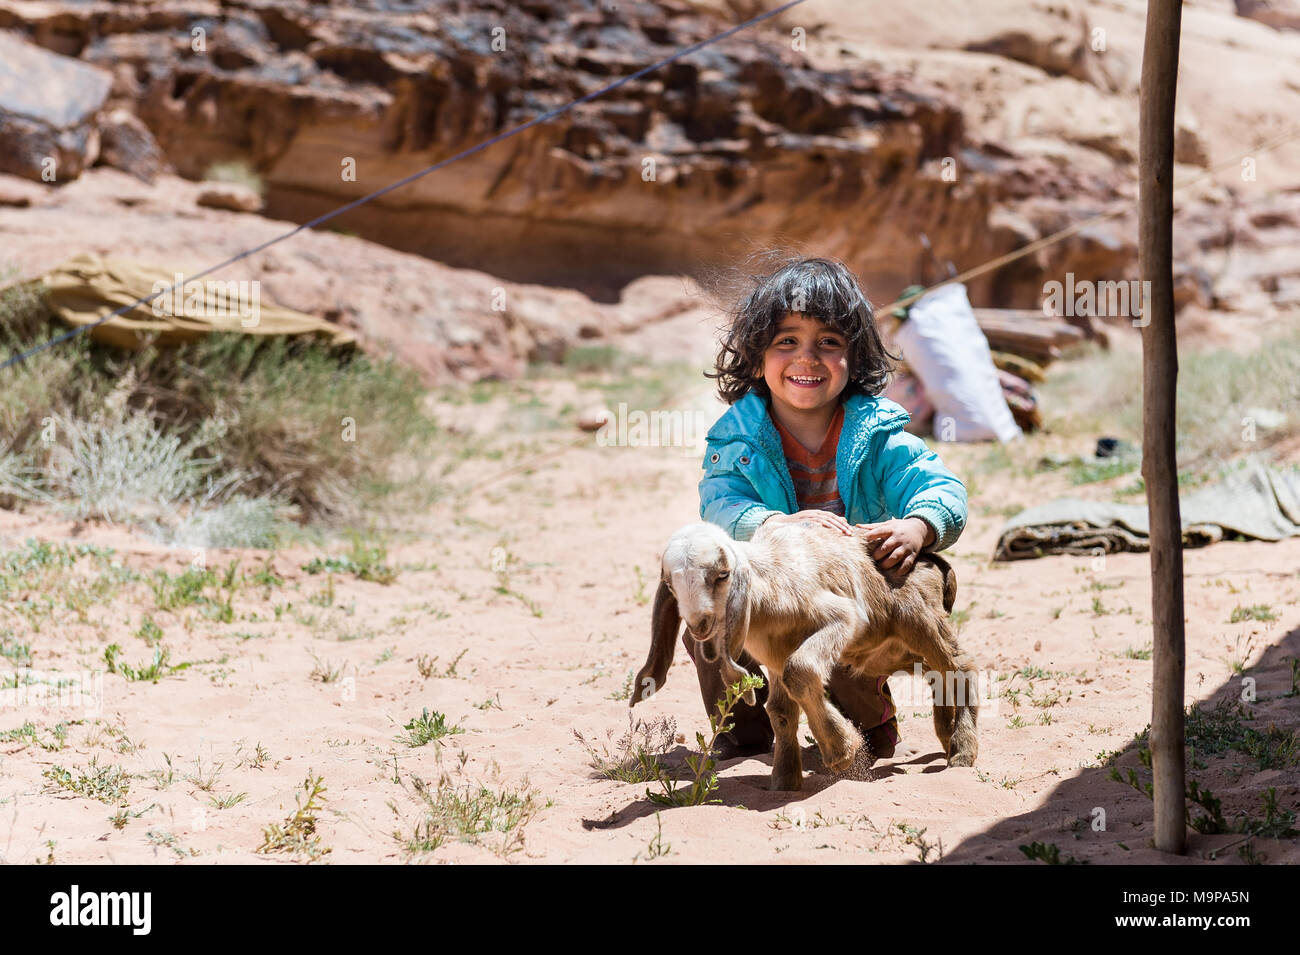 Young Bedouin girl playing with baby goat in the Wadi Rum desert near the border of Saudi Arabia. - Stock Image